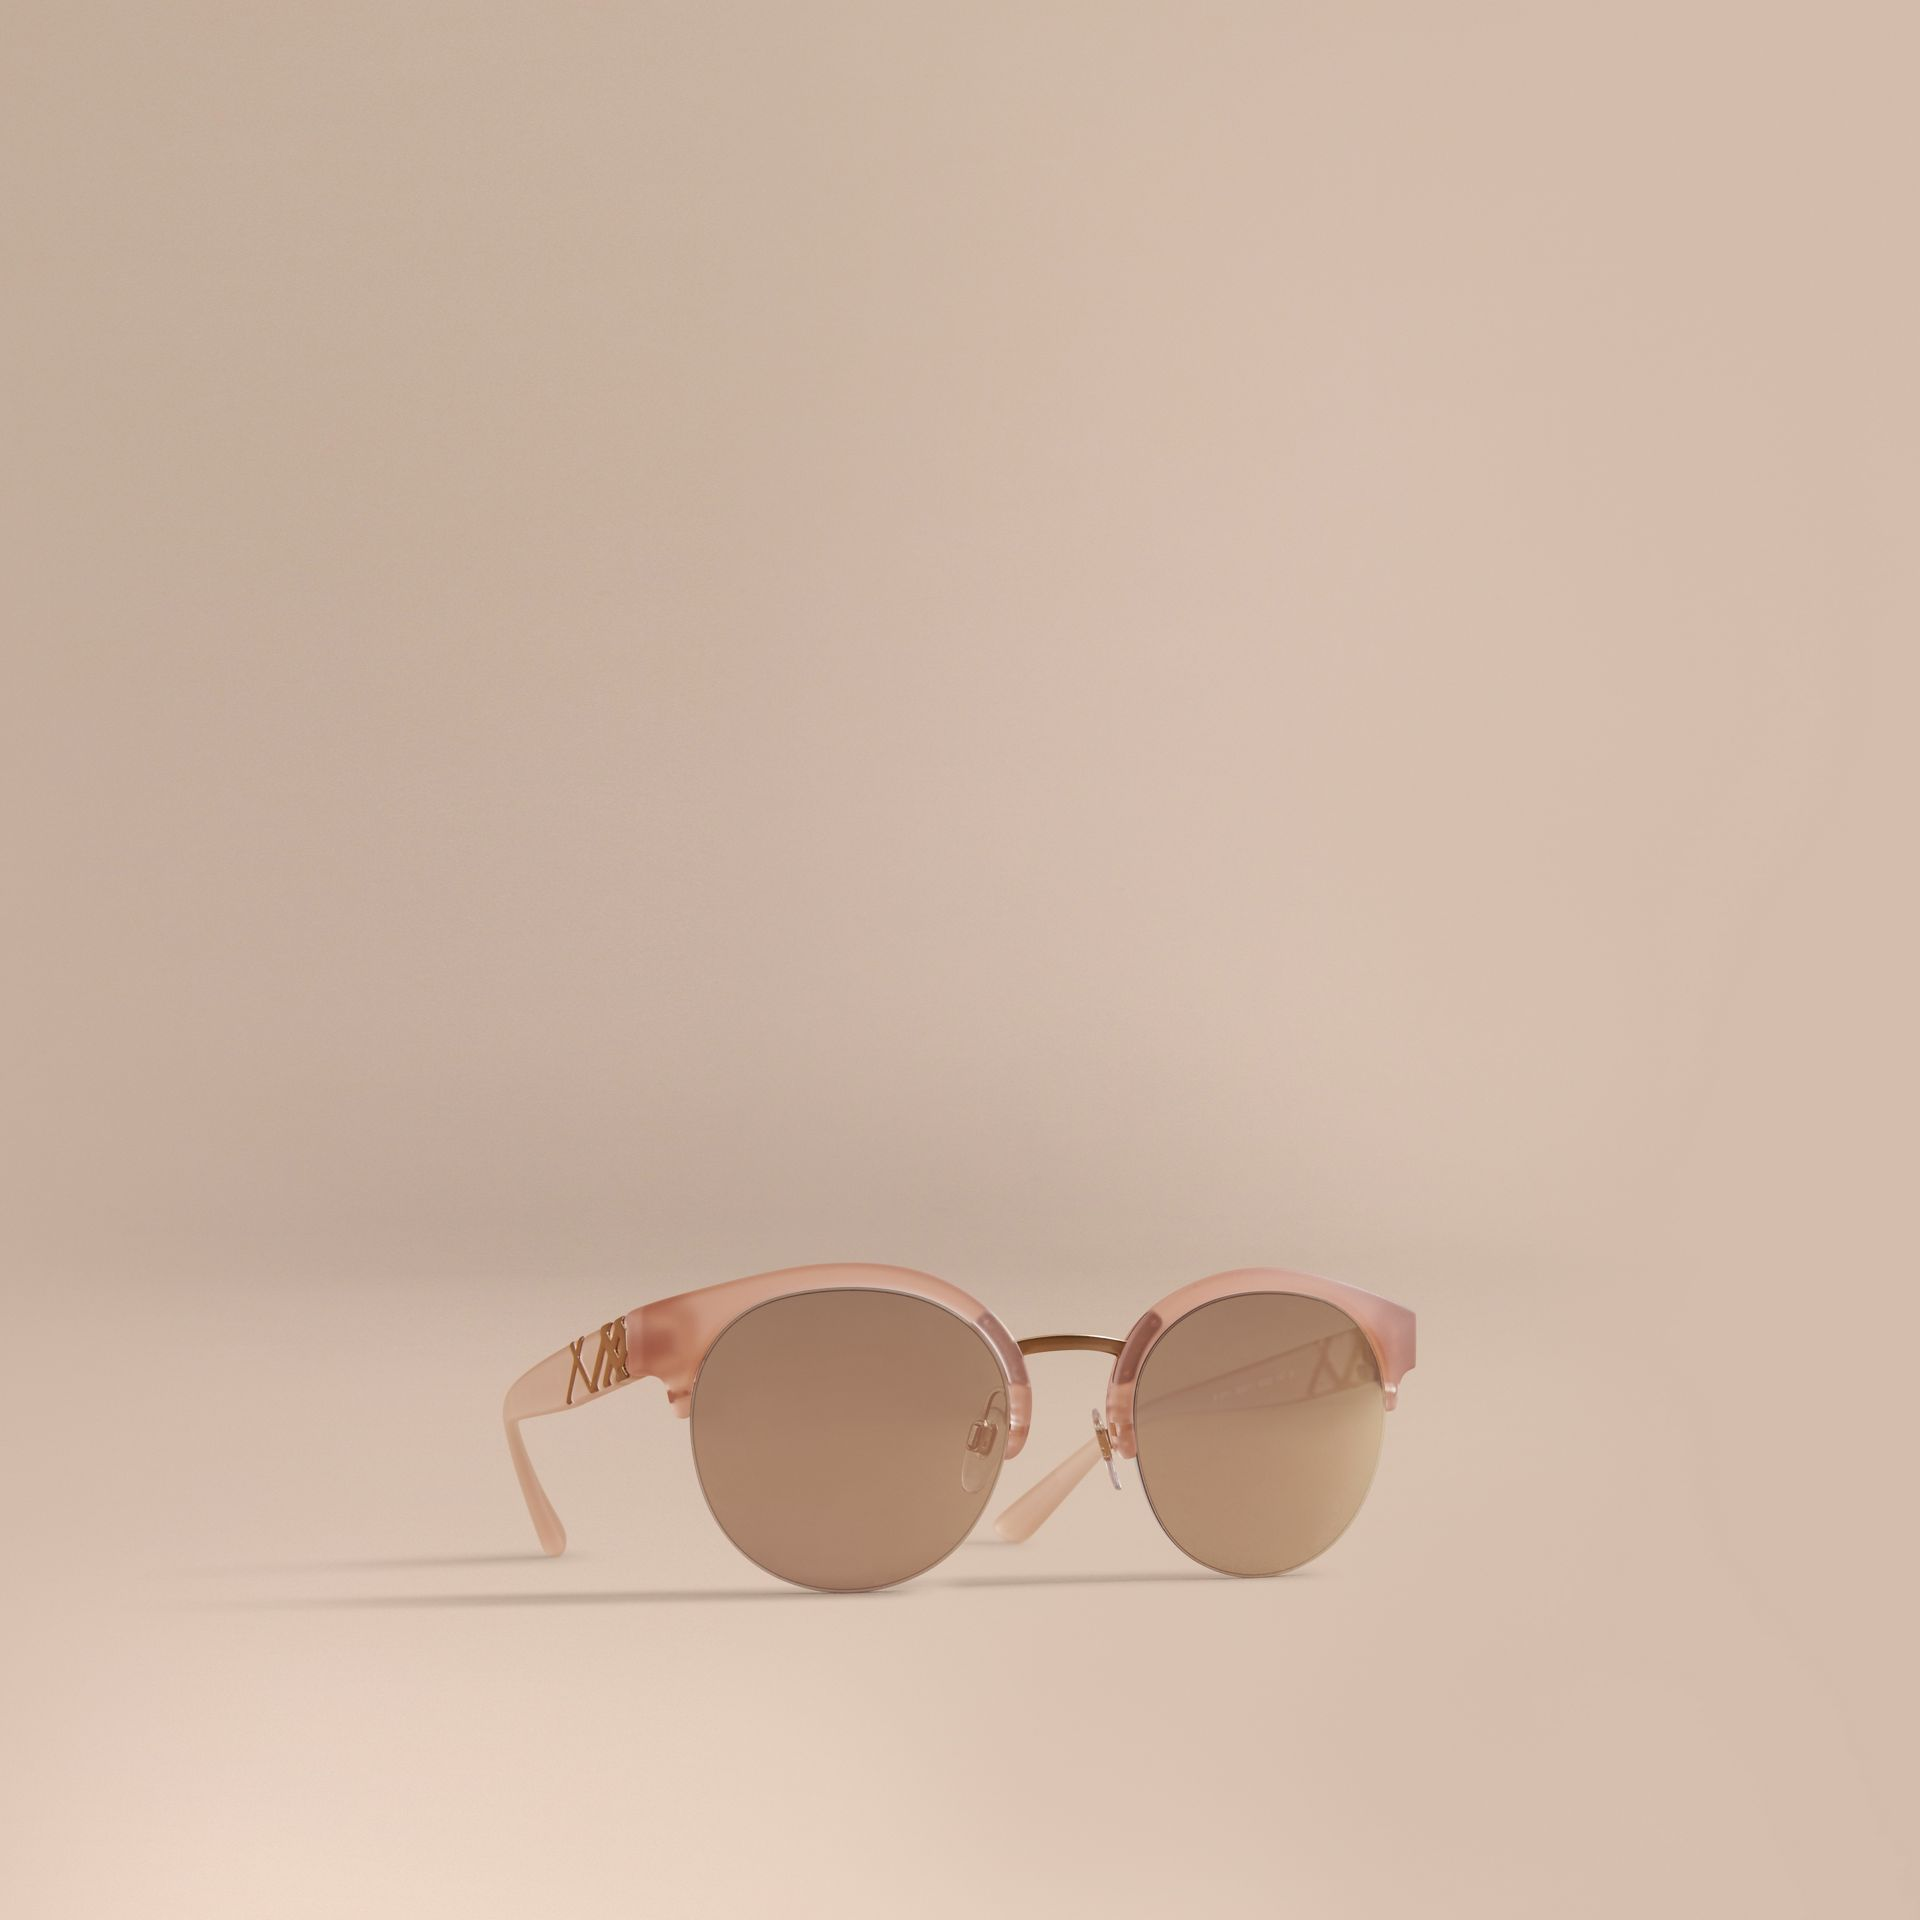 Check Detail Round Half-frame Sunglasses in Nude - Women | Burberry Singapore - gallery image 1